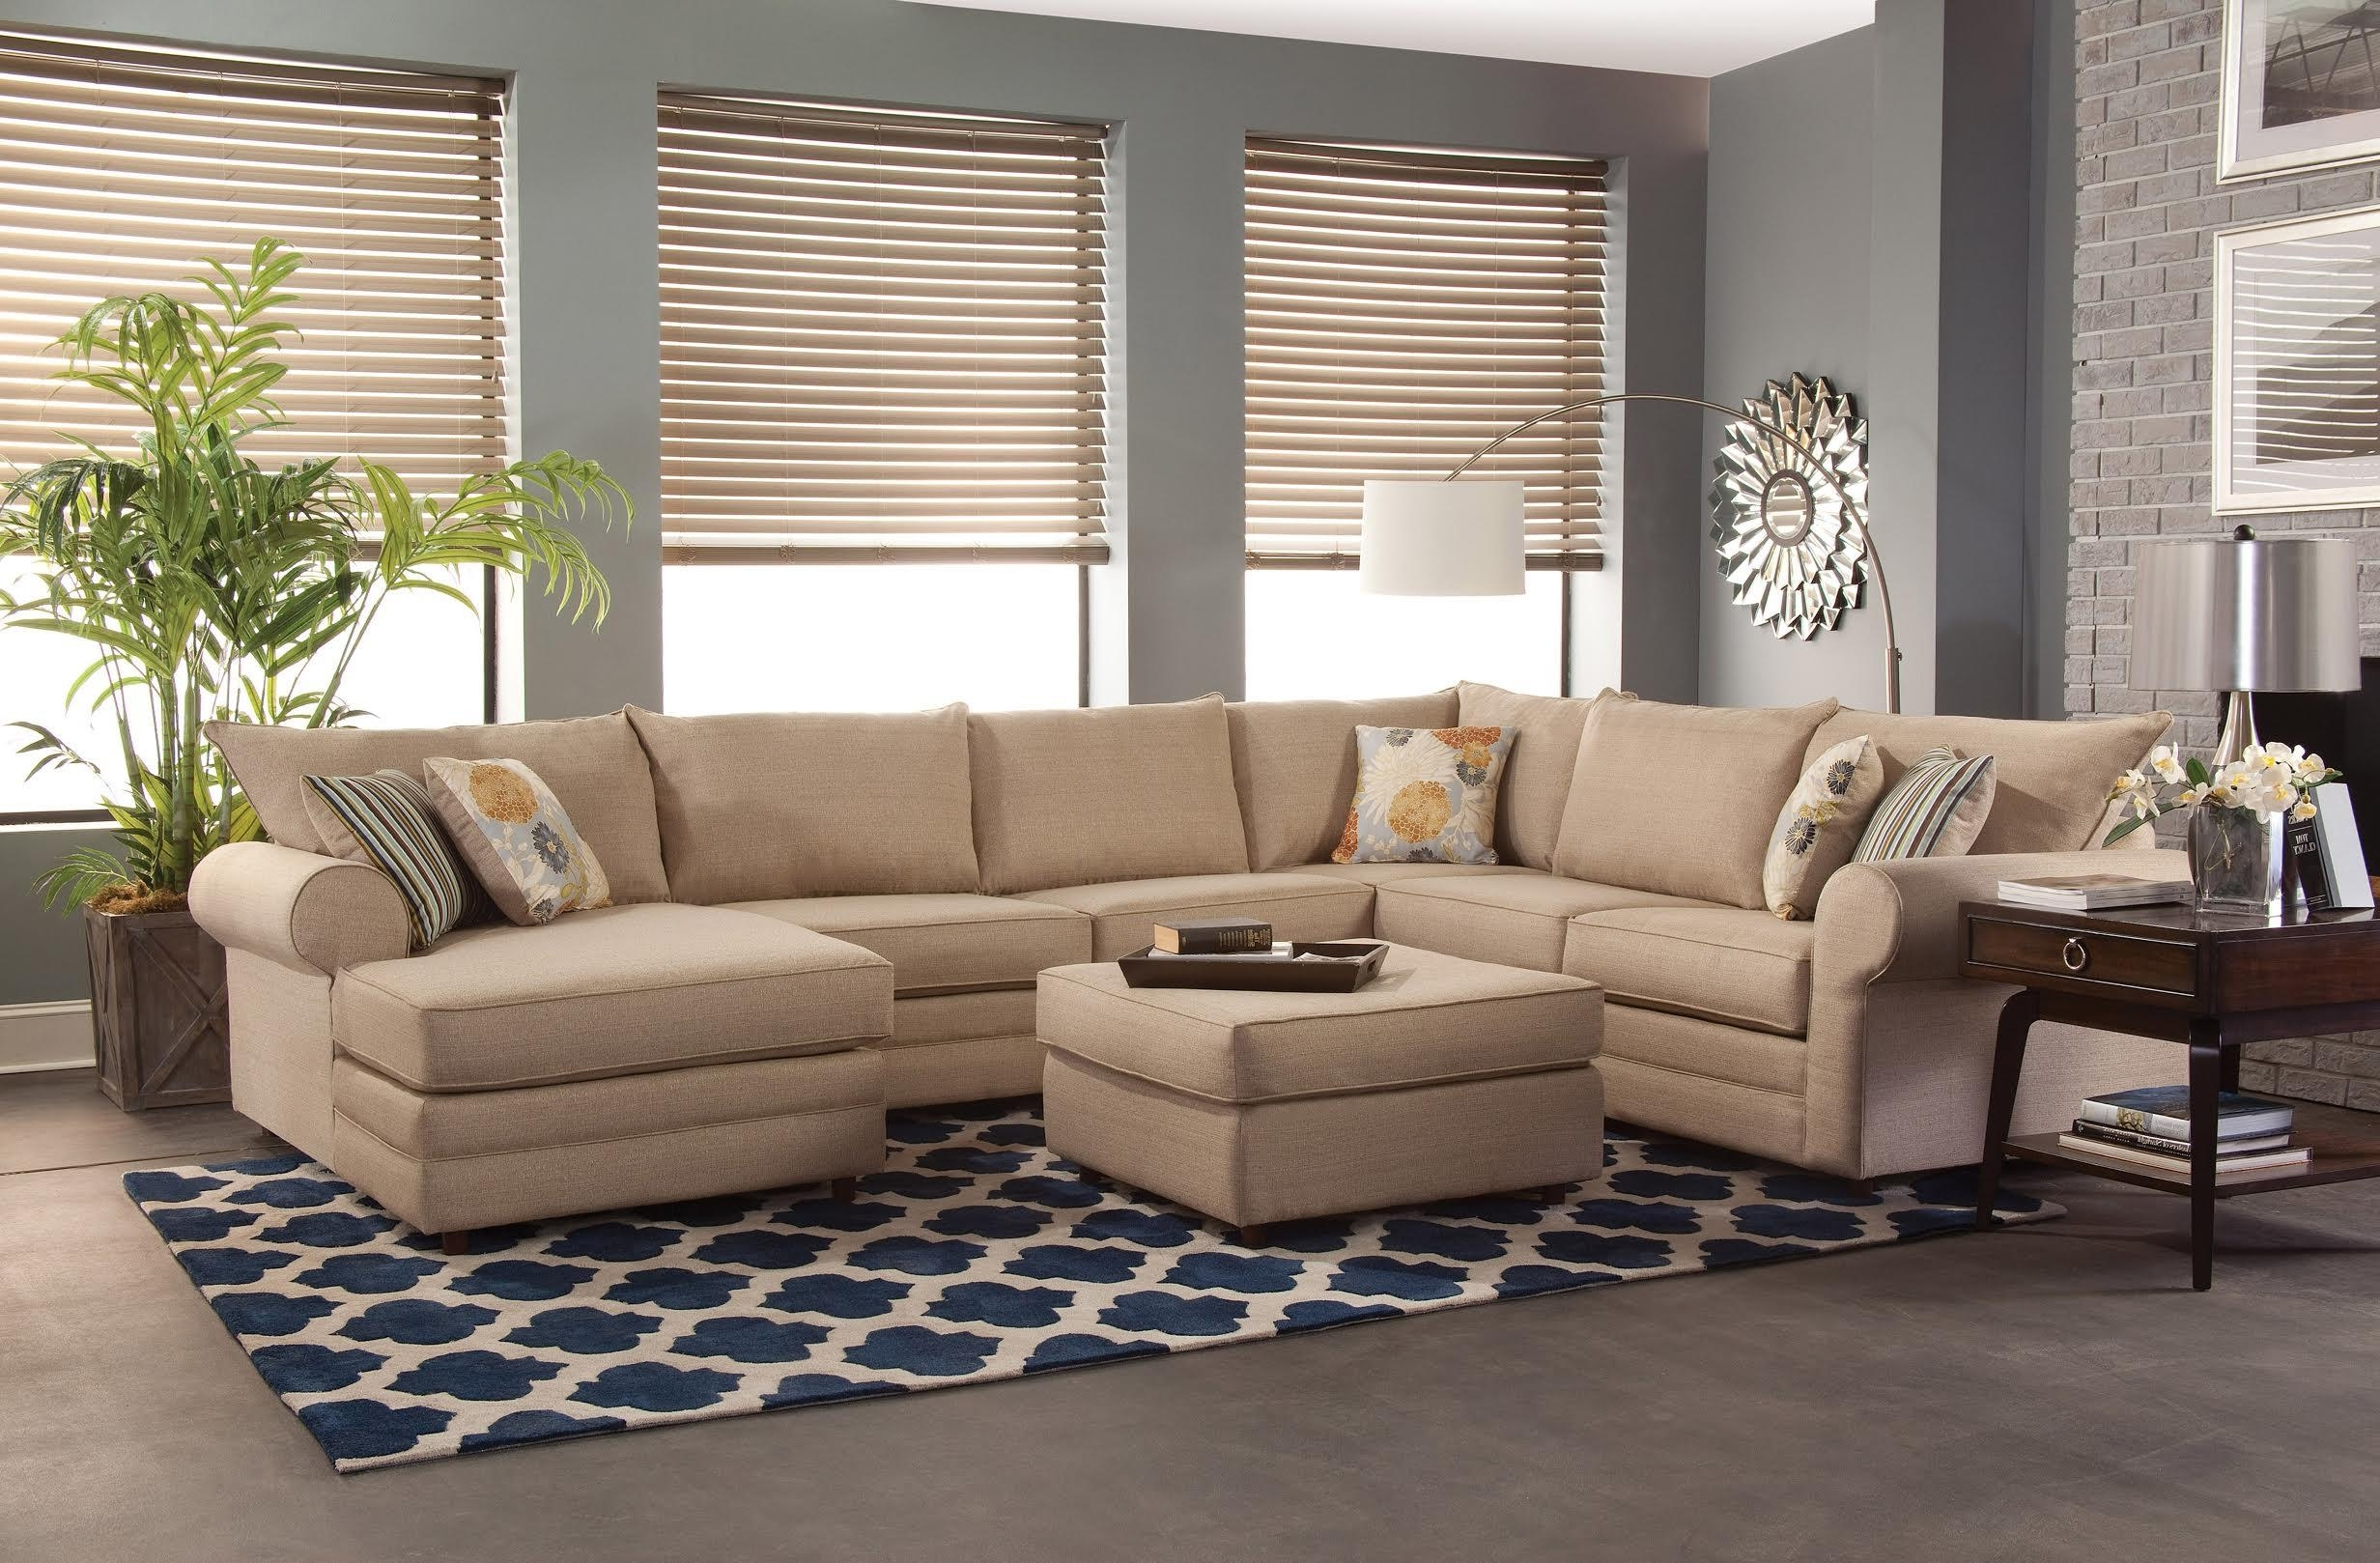 Recent Sofa : Magnificent Large Sectional Sofa With Chaise Reclining For 10X8 Sectional Sofas (View 19 of 20)